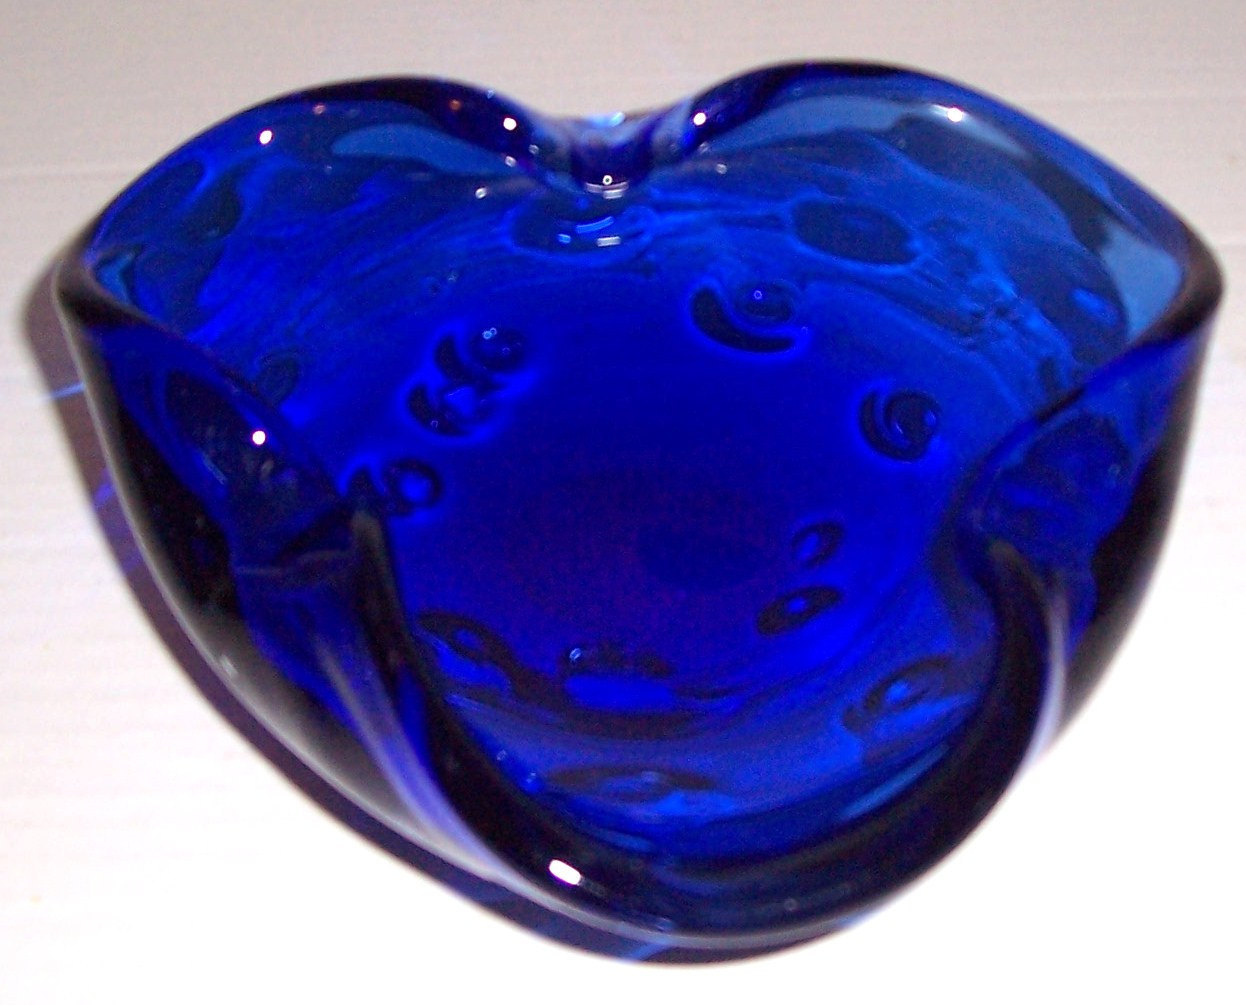 Vintage MURANO Glass Art Cobalt Blue Bullicante Designed Table Display With Air